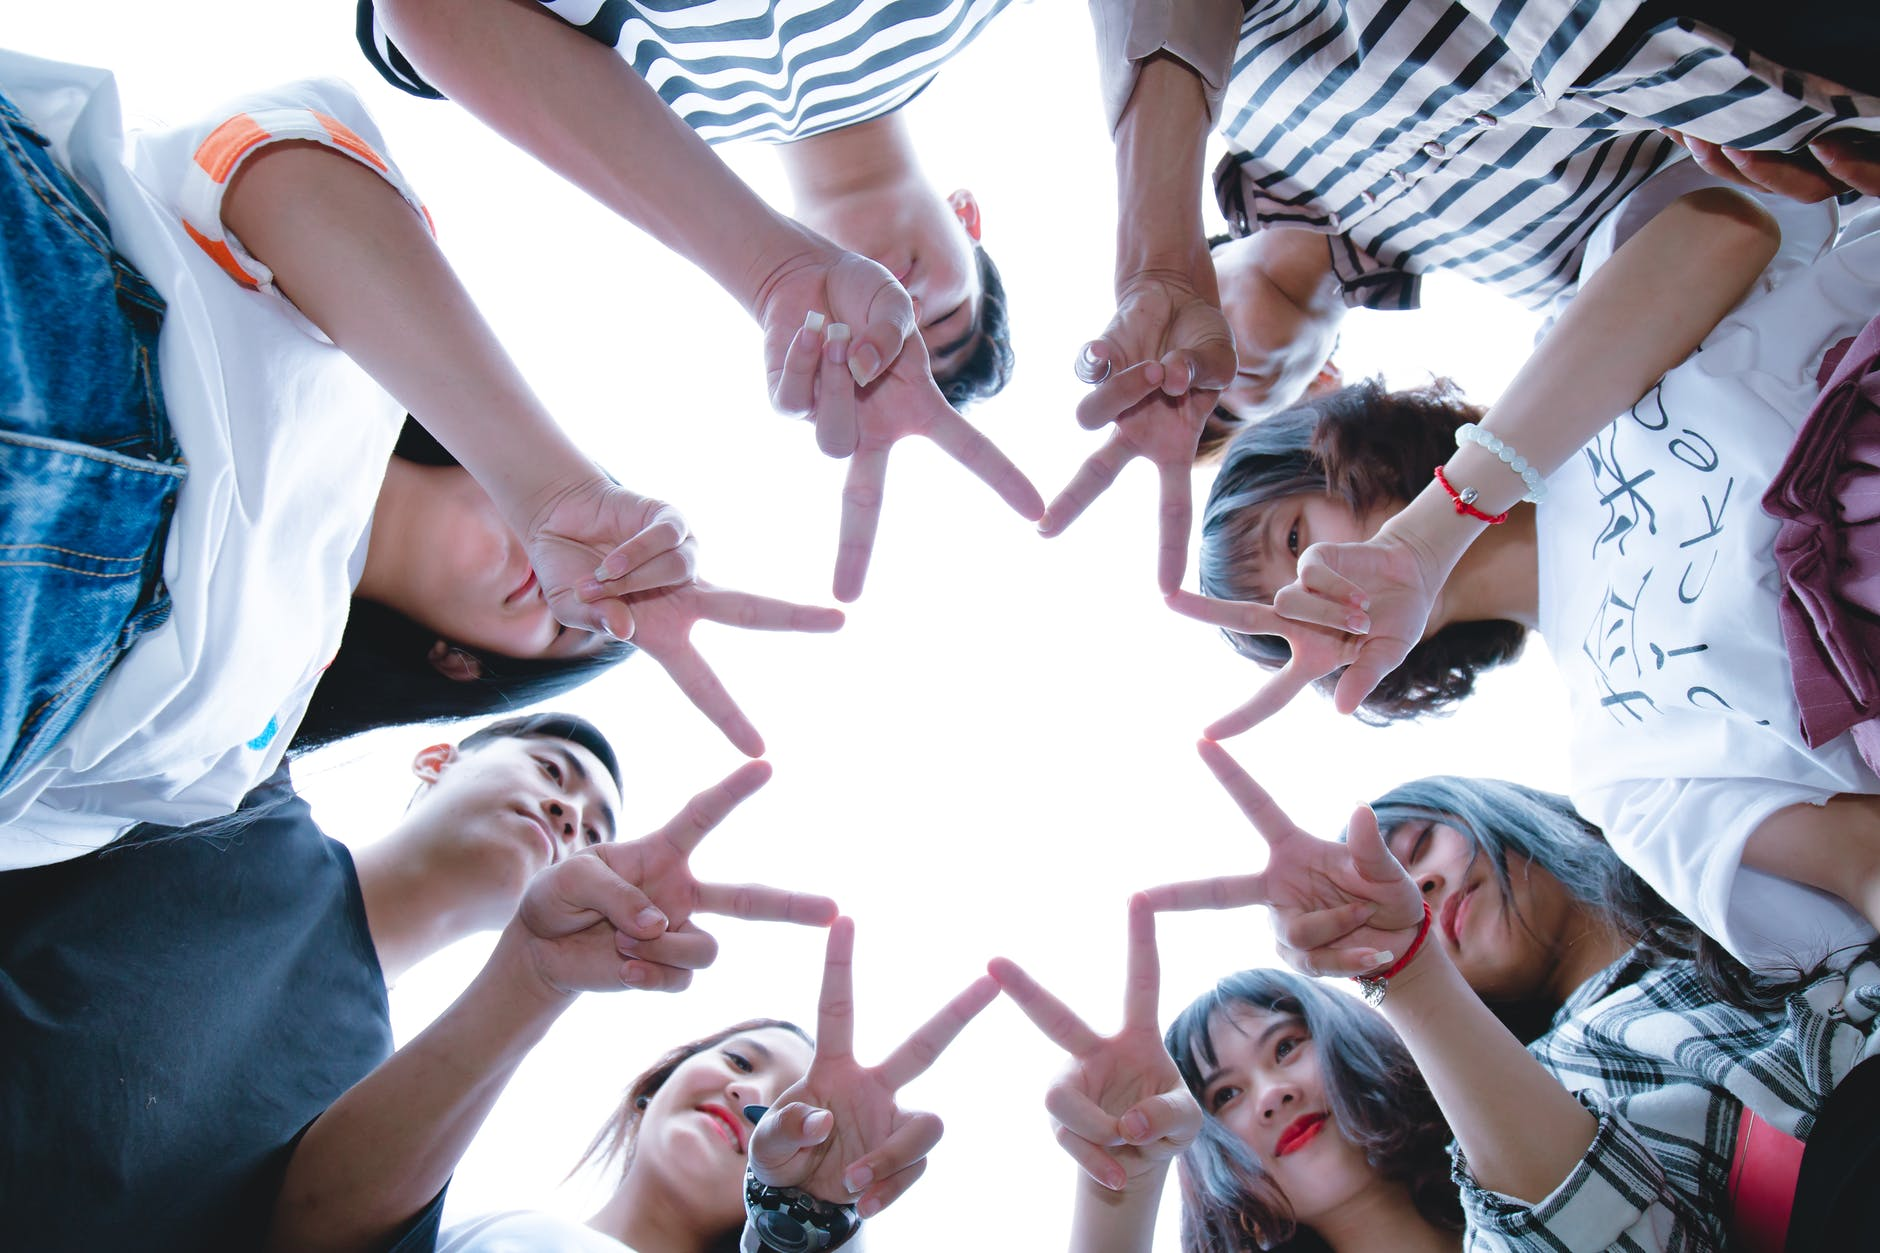 People in a circle creating a star symbol with their fingers.